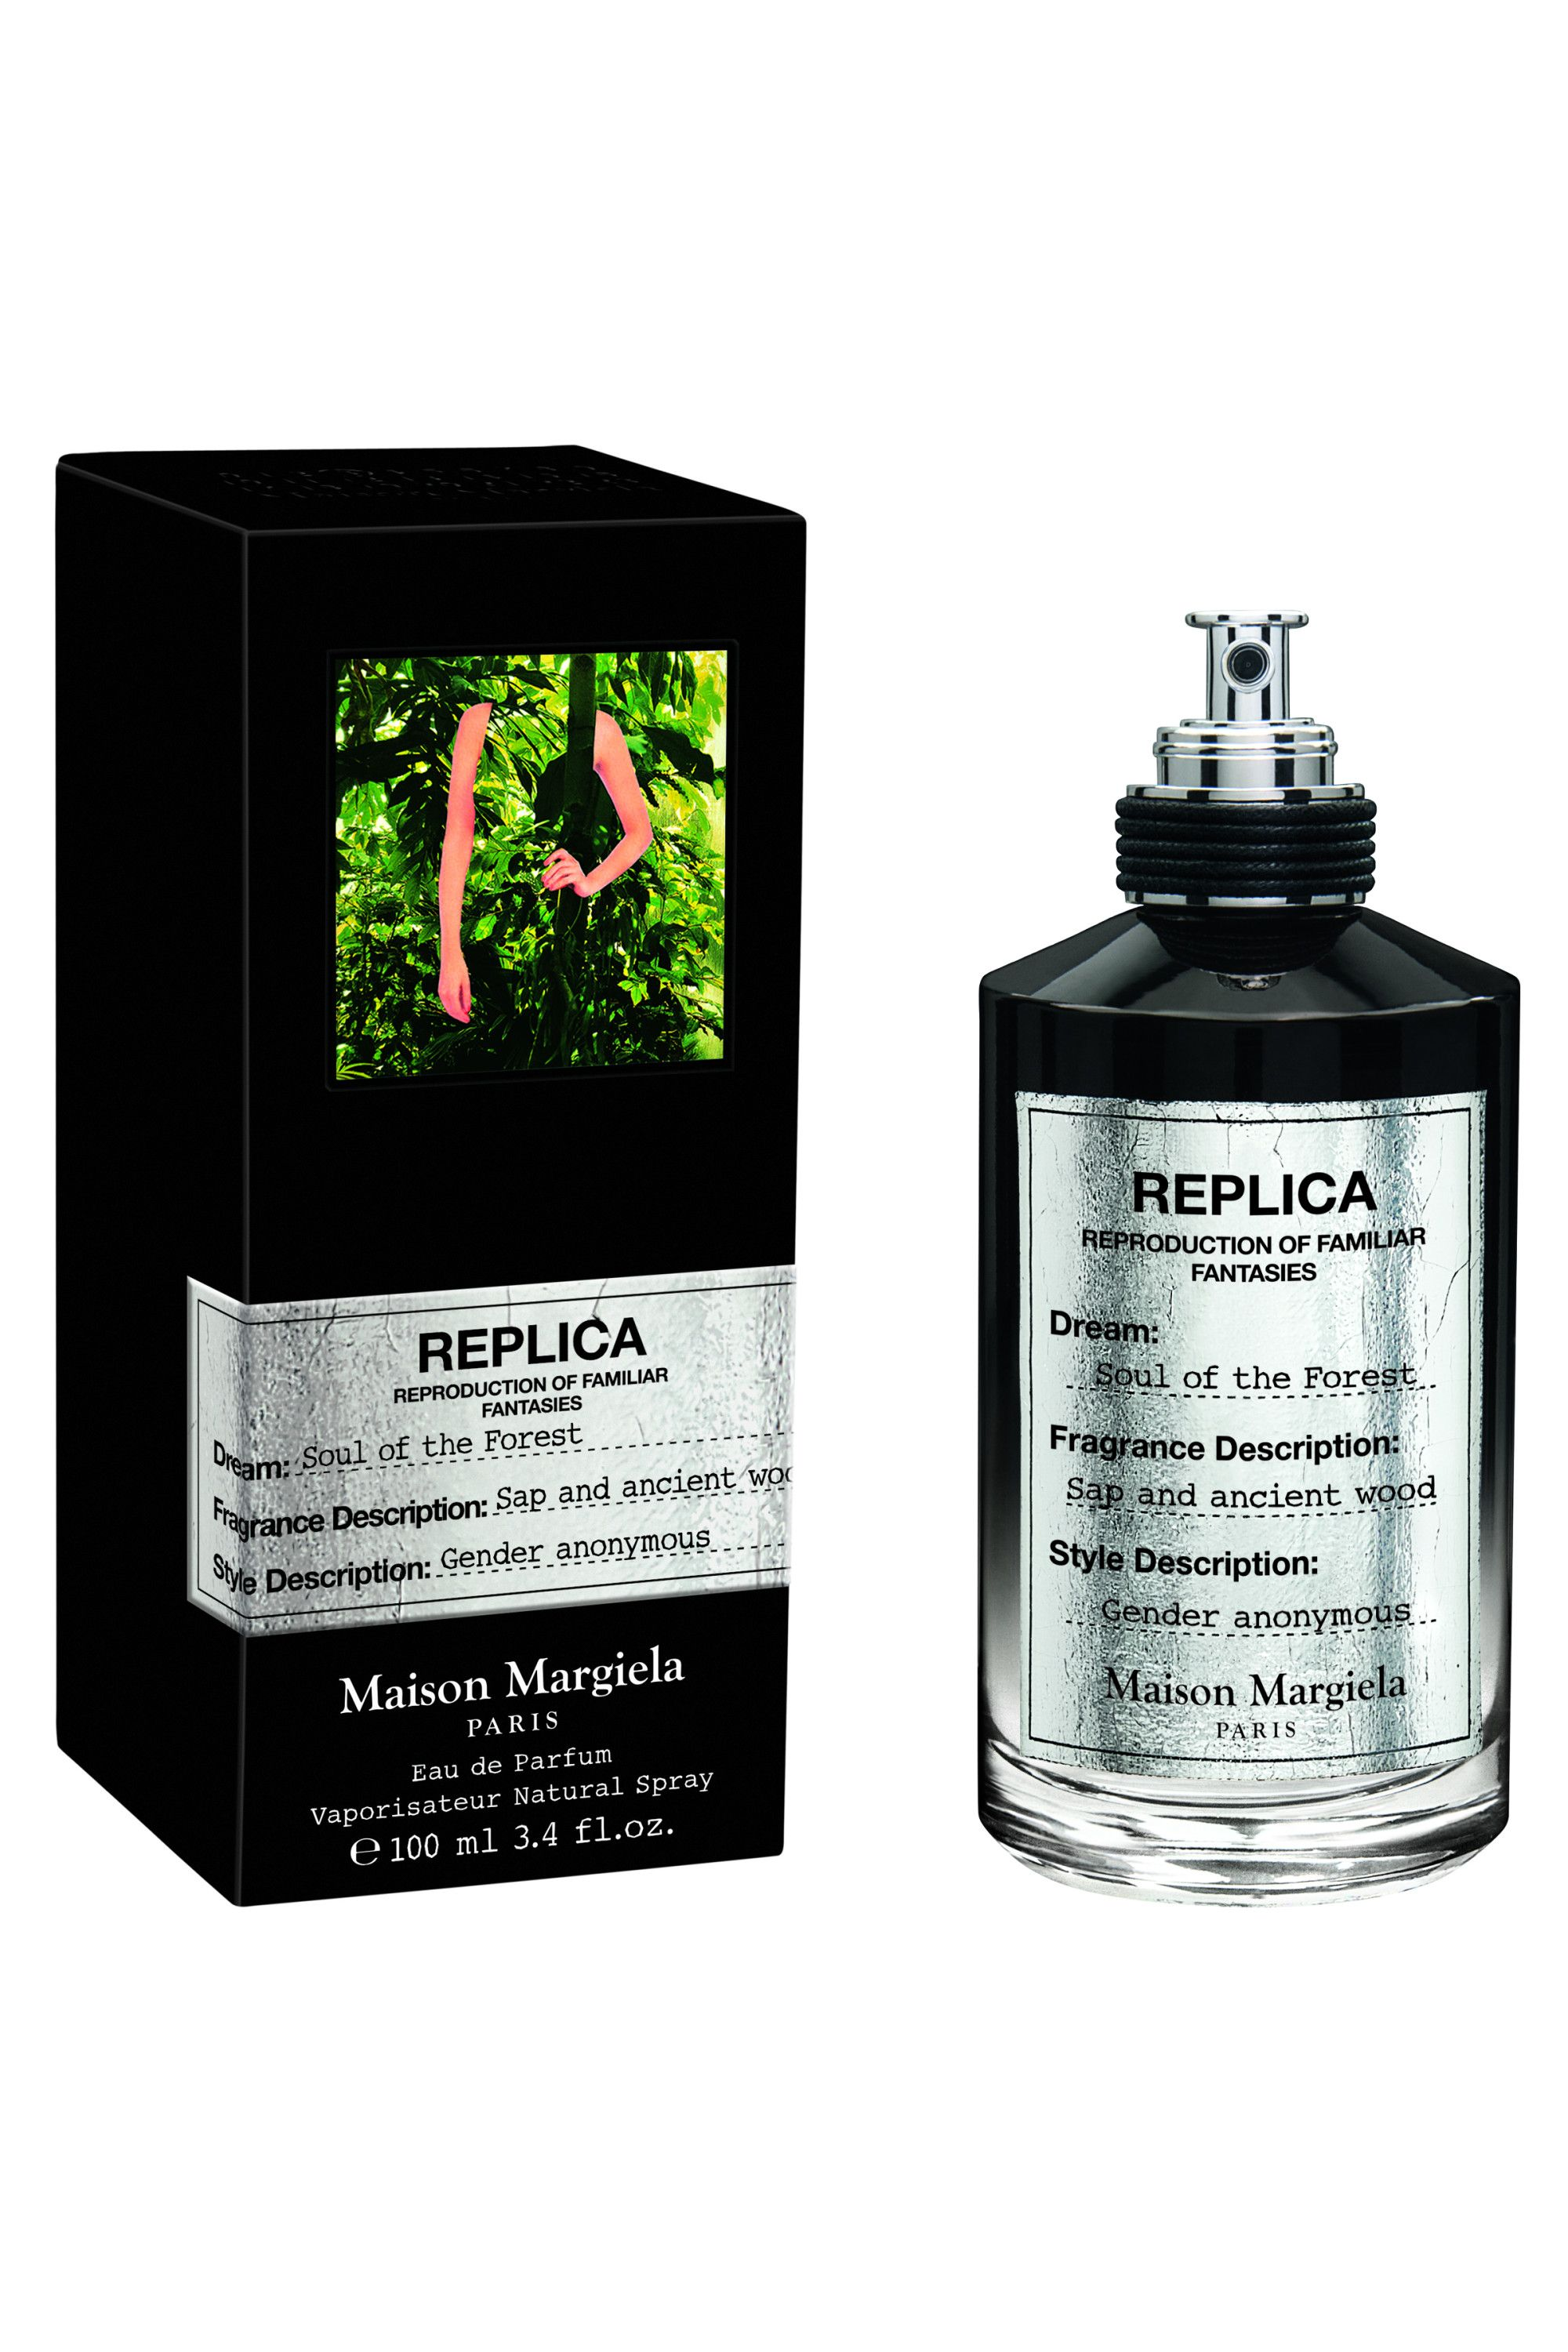 Blissim : Maison Margiela - Eau De Parfum REPLICA Soul Of The Forest - Eau De Parfum REPLICA Soul Of The Forest